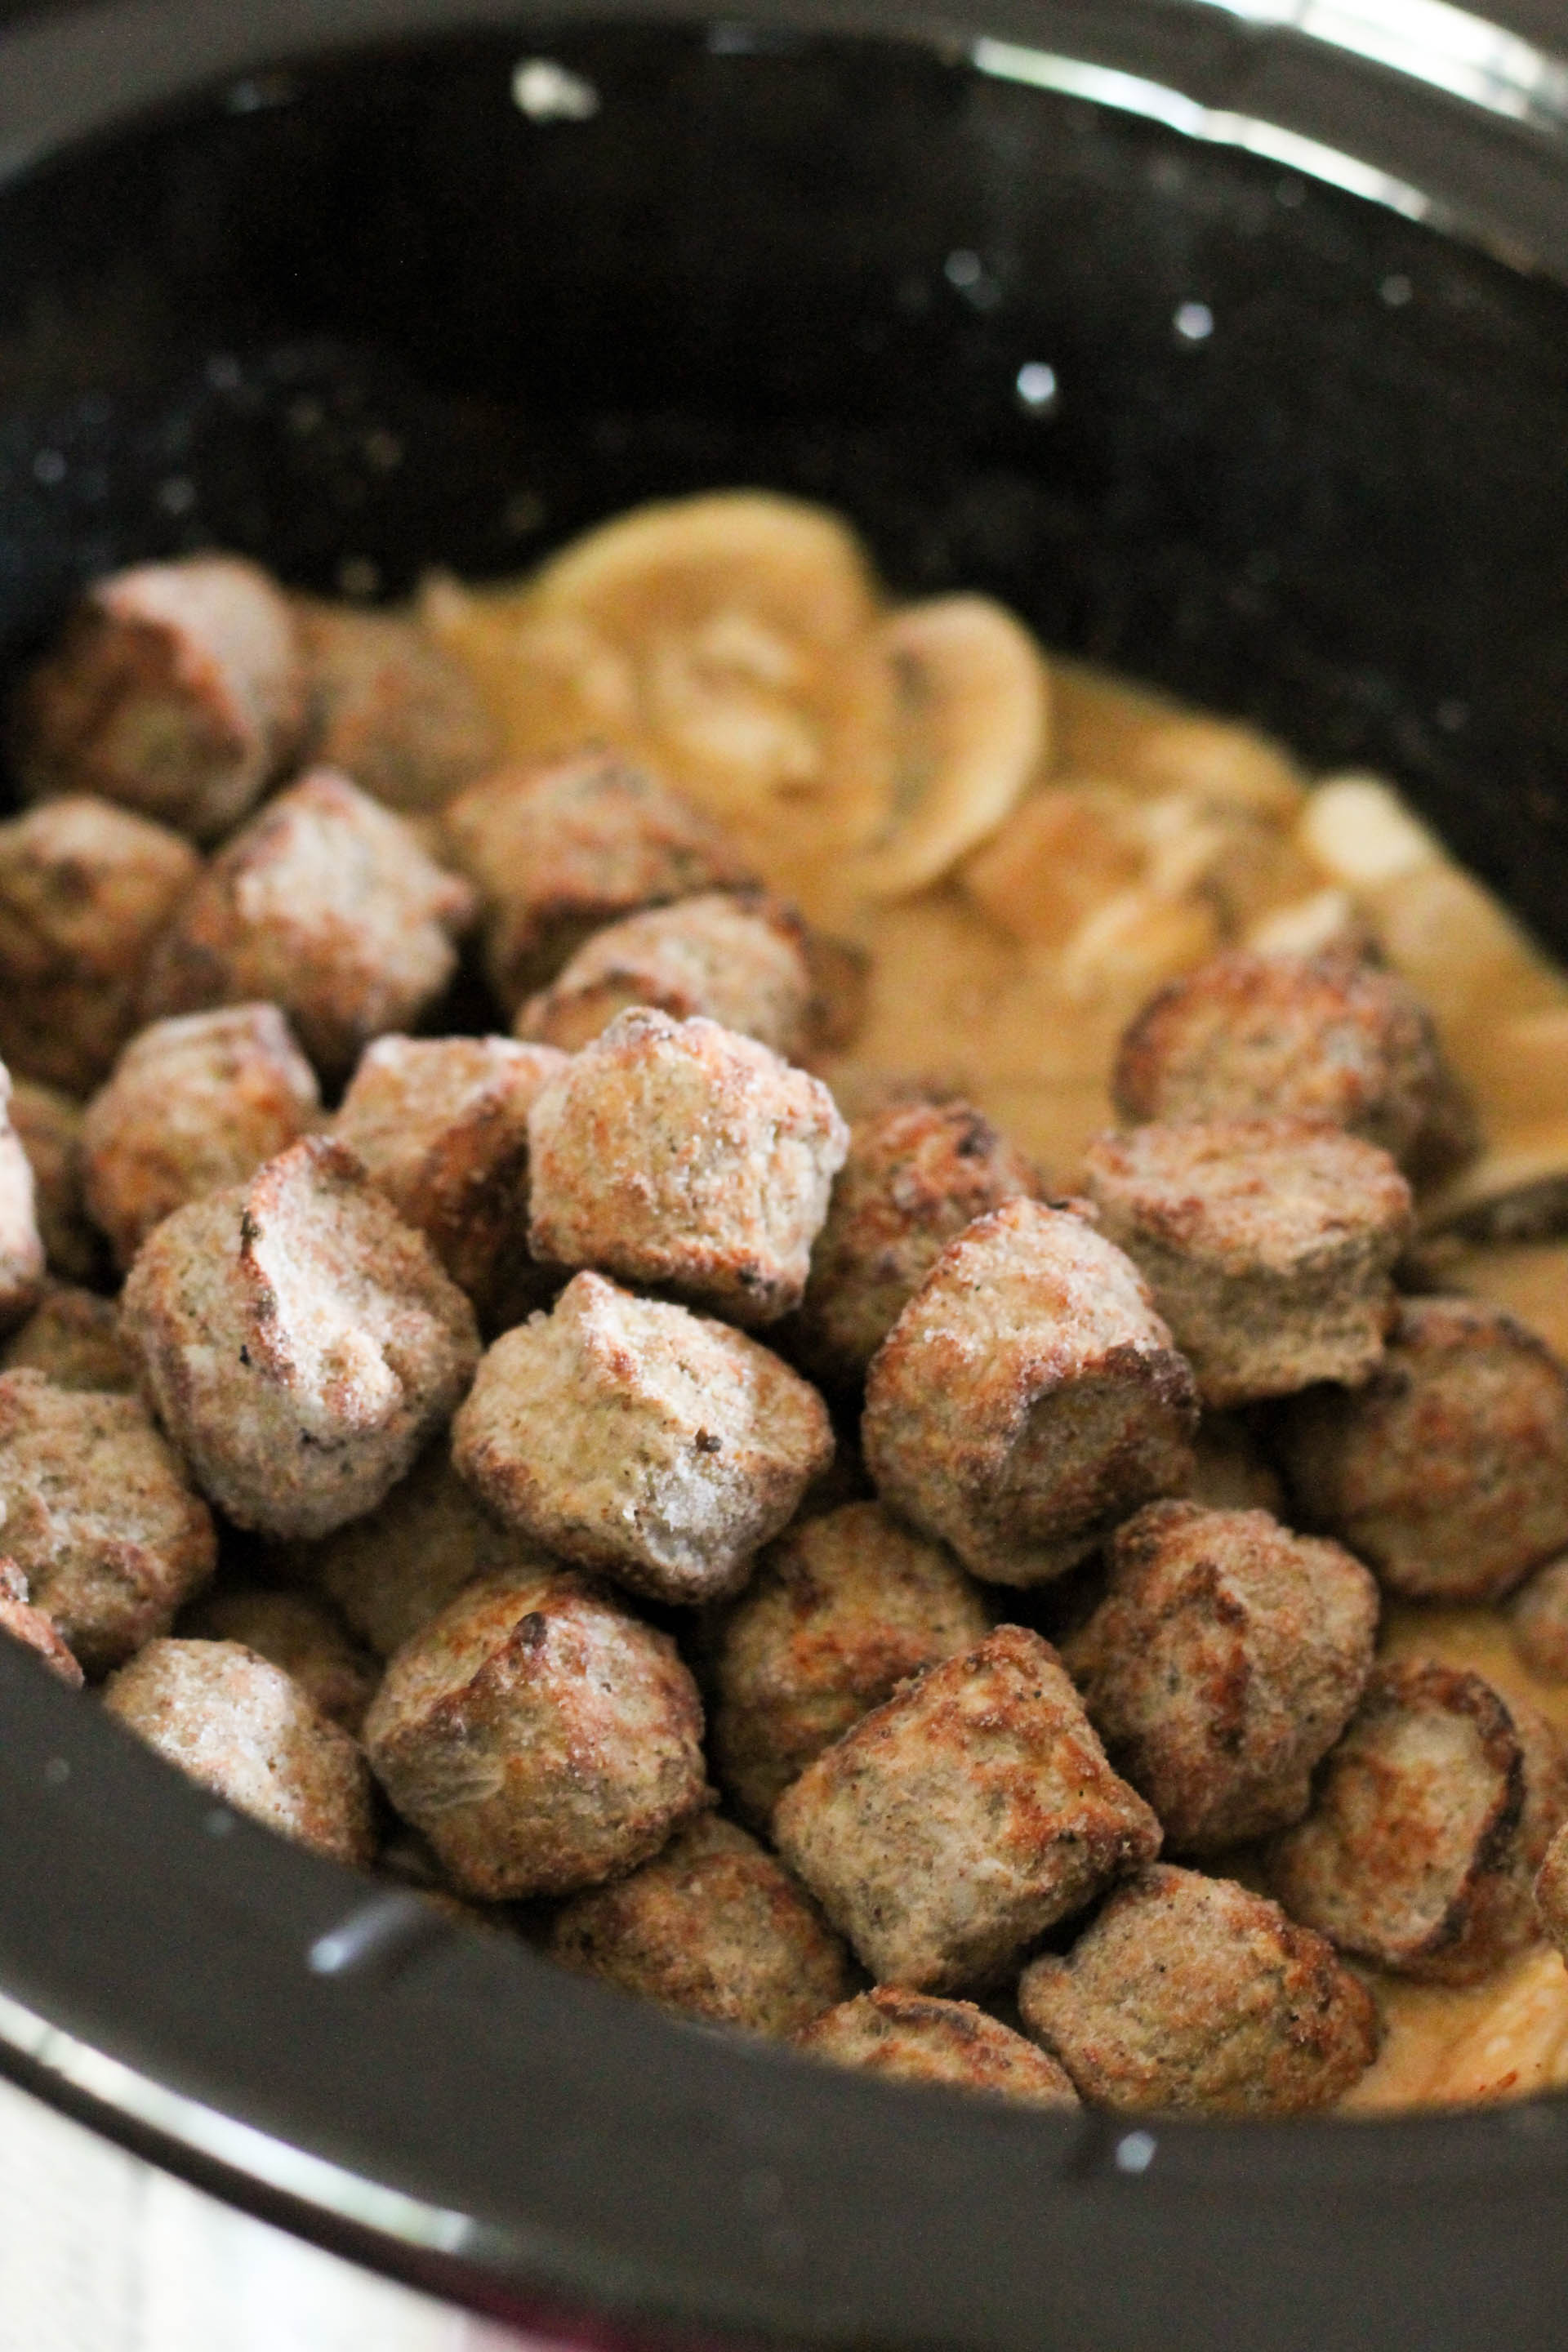 Frozen meatballs added to slow cooker.